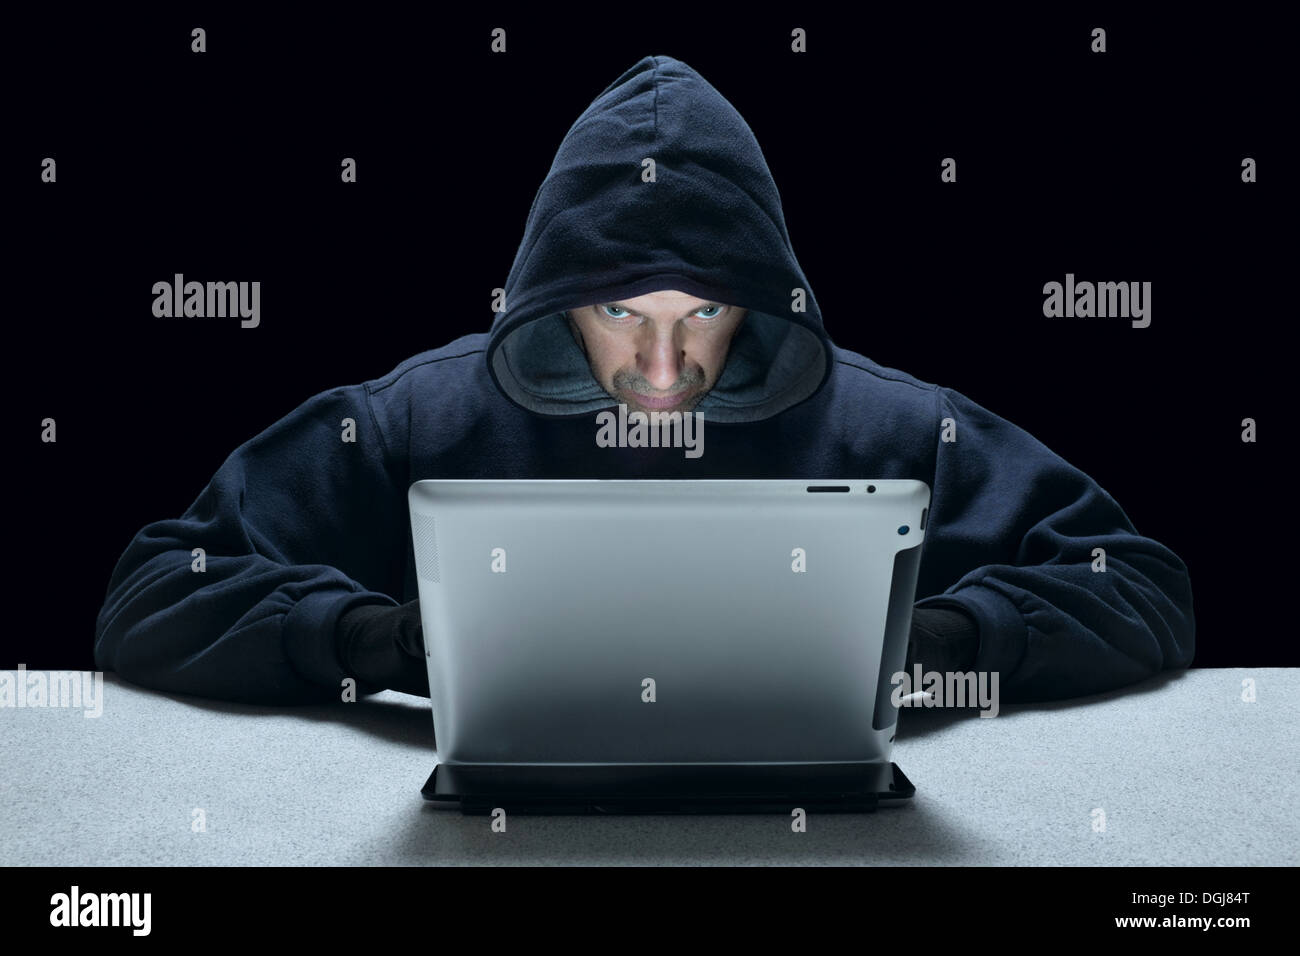 a hooded man representing a cyber criminal stock photo 61867144 alamy